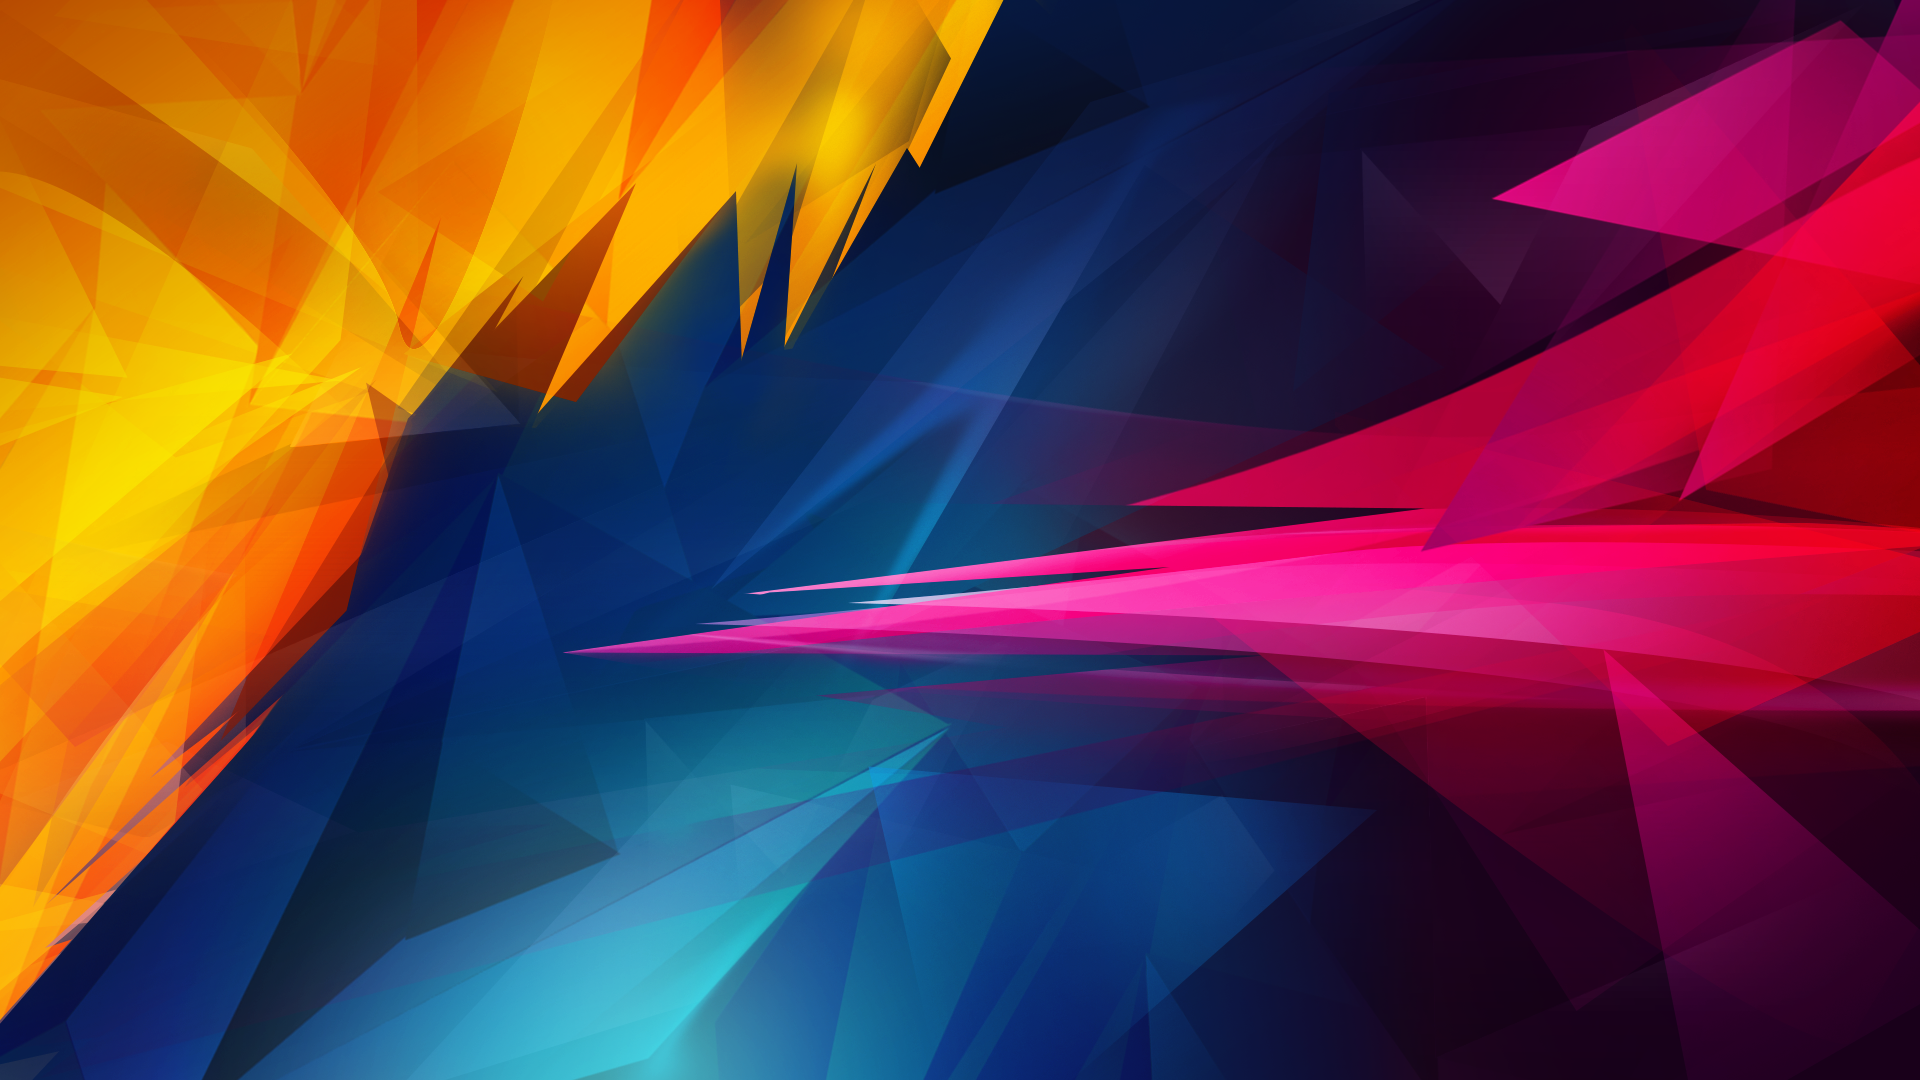 Abstract wallpapers high quality download free for Quality wallpaper for home